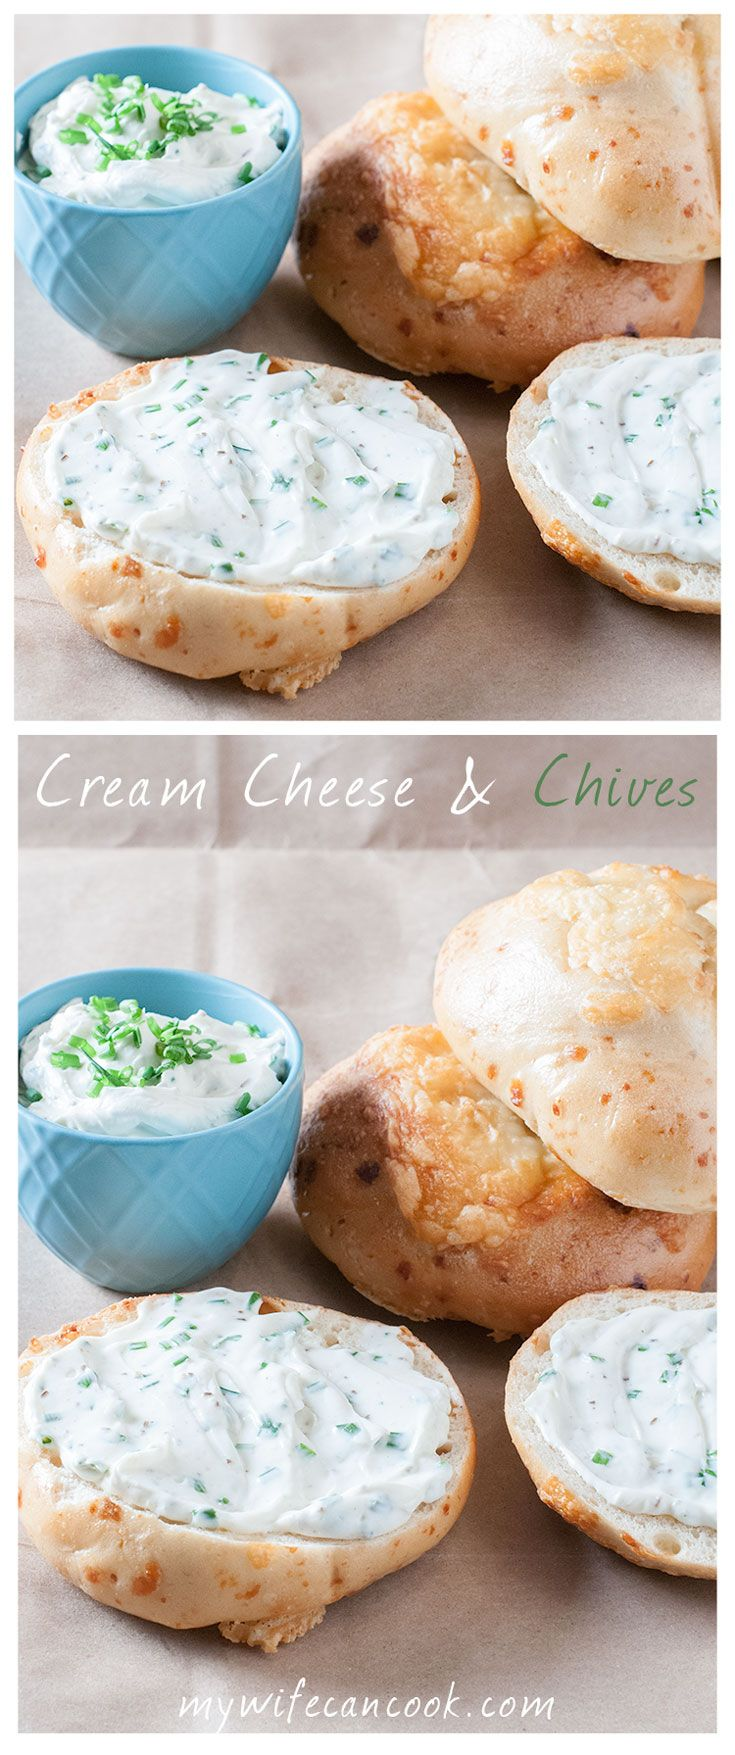 Cream Cheese and Chives have become a tradition in our house. This Chive Cream Cheese Dip is perfect for dipping vegetables or it makes a great spread to go on crackers or you favorite bagel. You'll find a lot of flavored cream cheeses and dips that feature cream cheese, but you'll be hard pressed to find a dip or spread that's easier to put together than this! It's cream cheese plus 3 other ingredients. You mix them together and that's it! No baking, no fuss, just great flavor. Try it out!